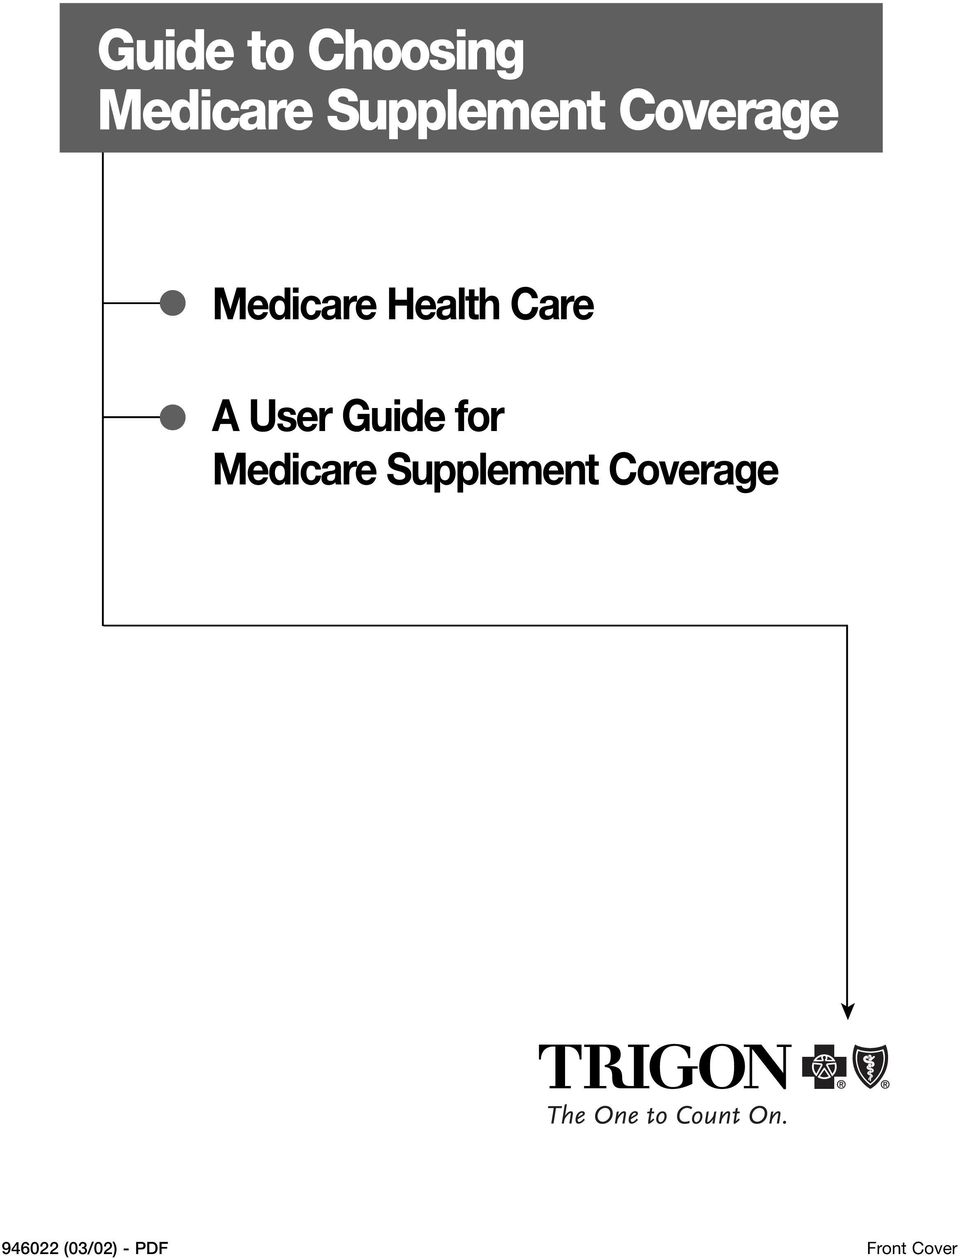 Care A User Guide for Medicare